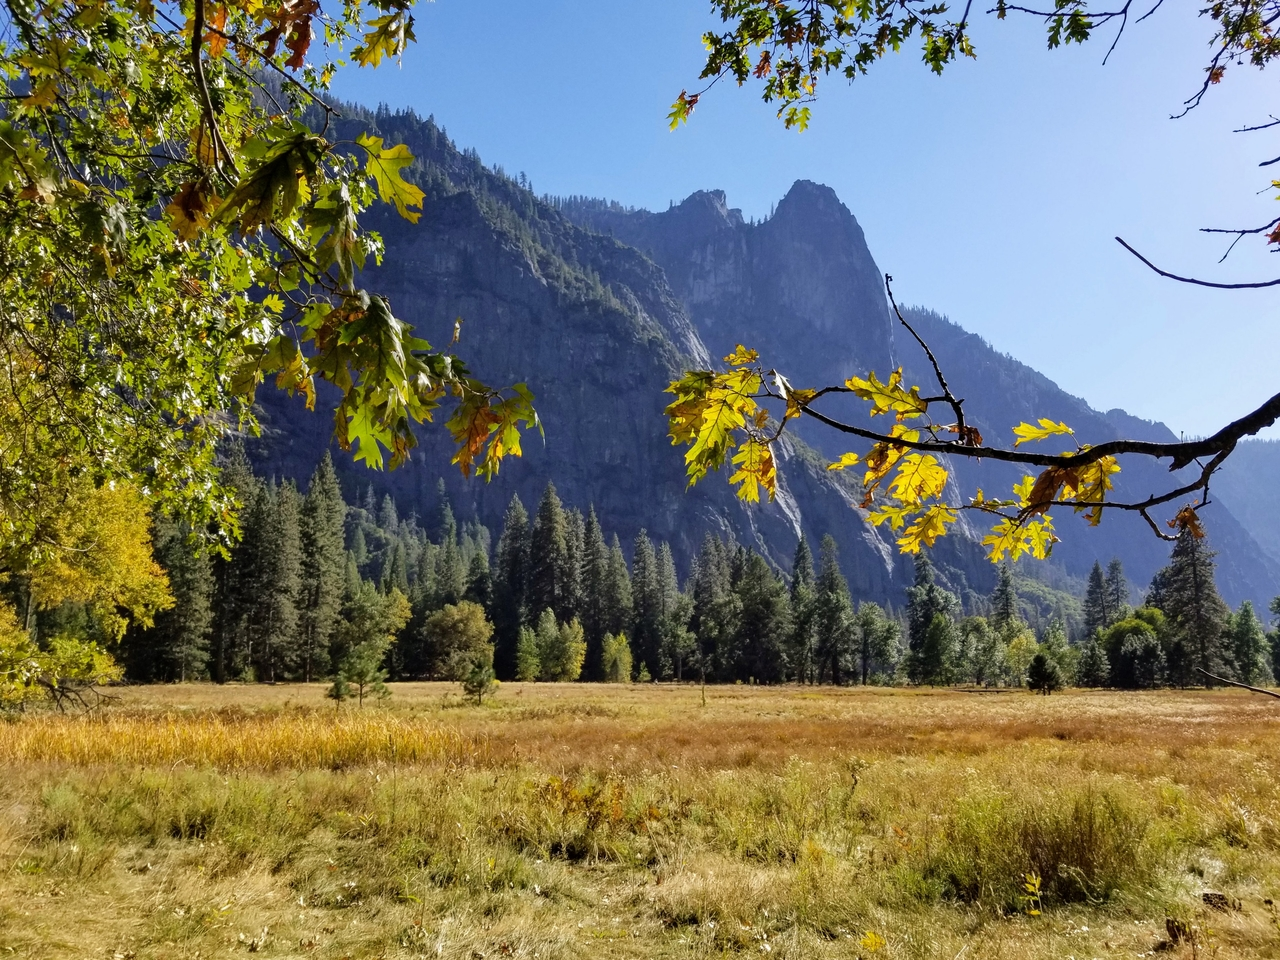 Sentinel Rock in Autumn photo by Yosemite Conservancy/Gretchen Roecker